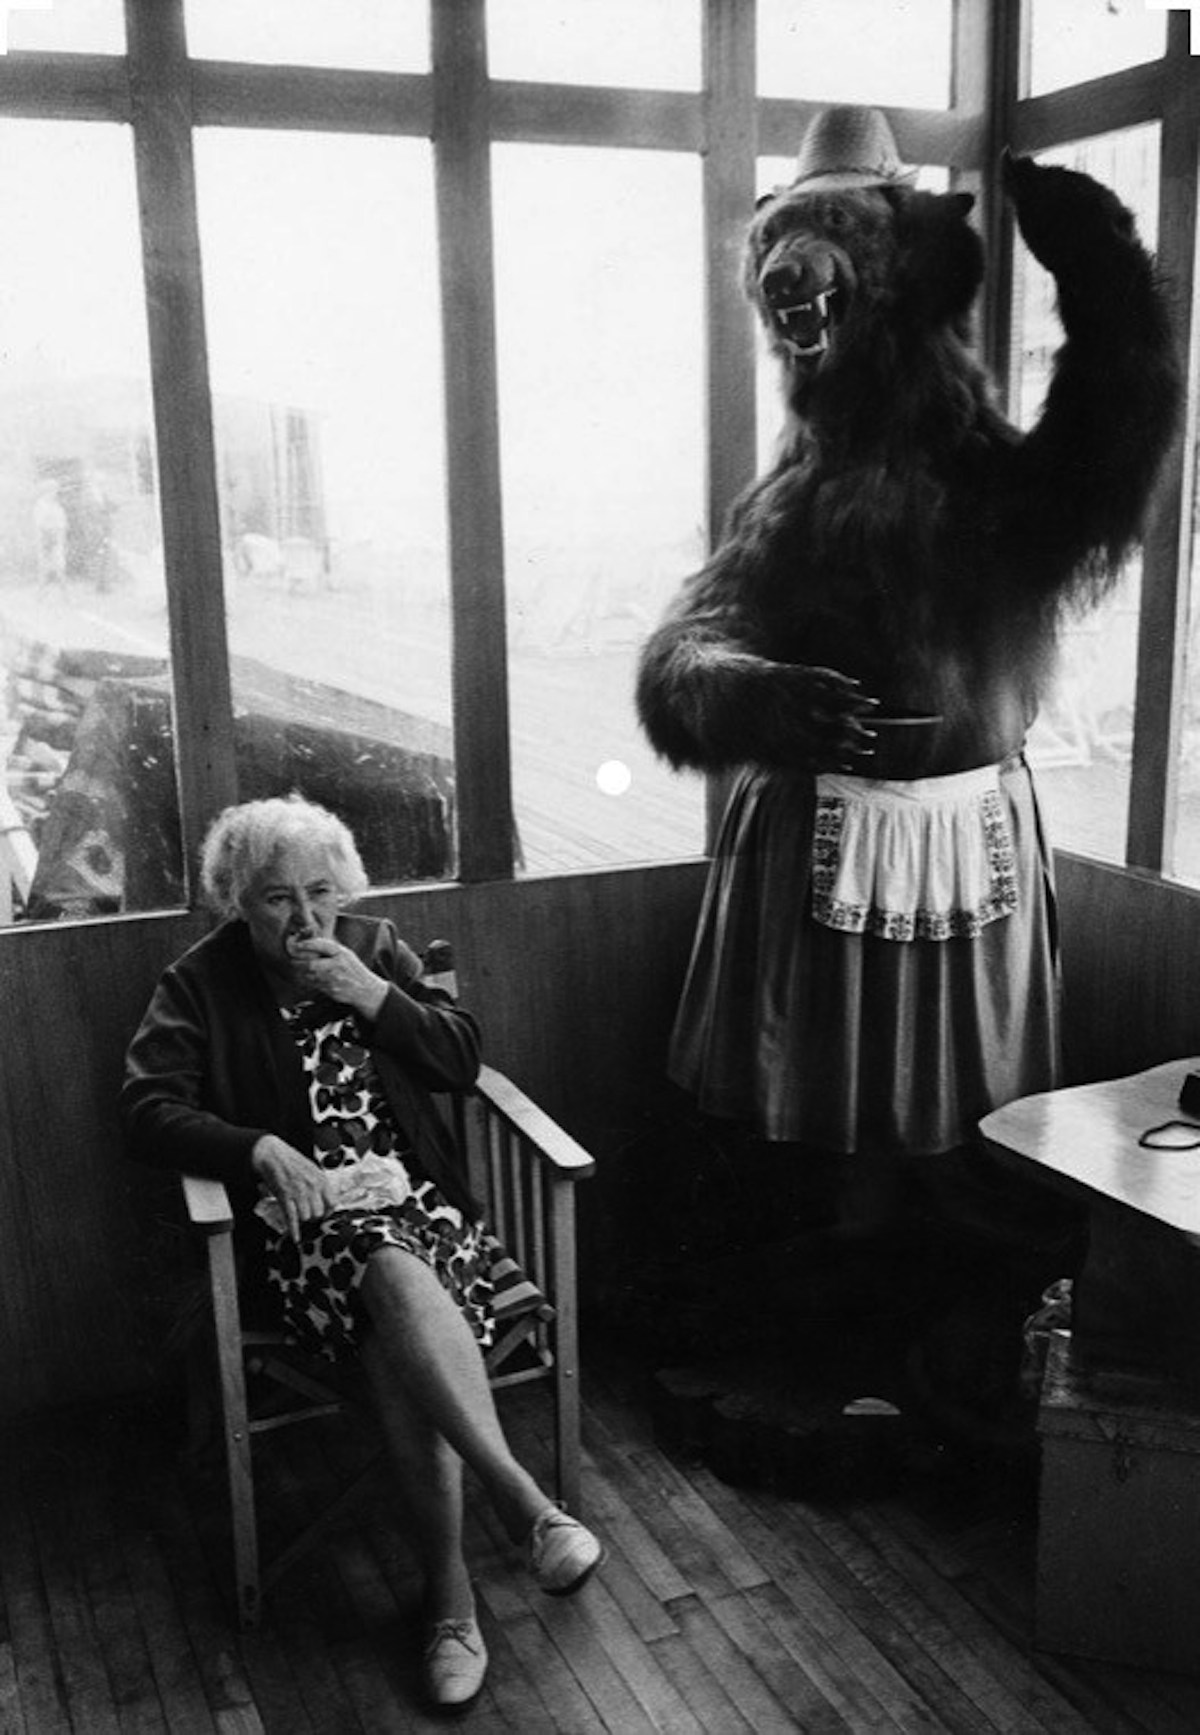 Elderly woman eating pie seated in a piershelter next to a stuffed bear, 1969.